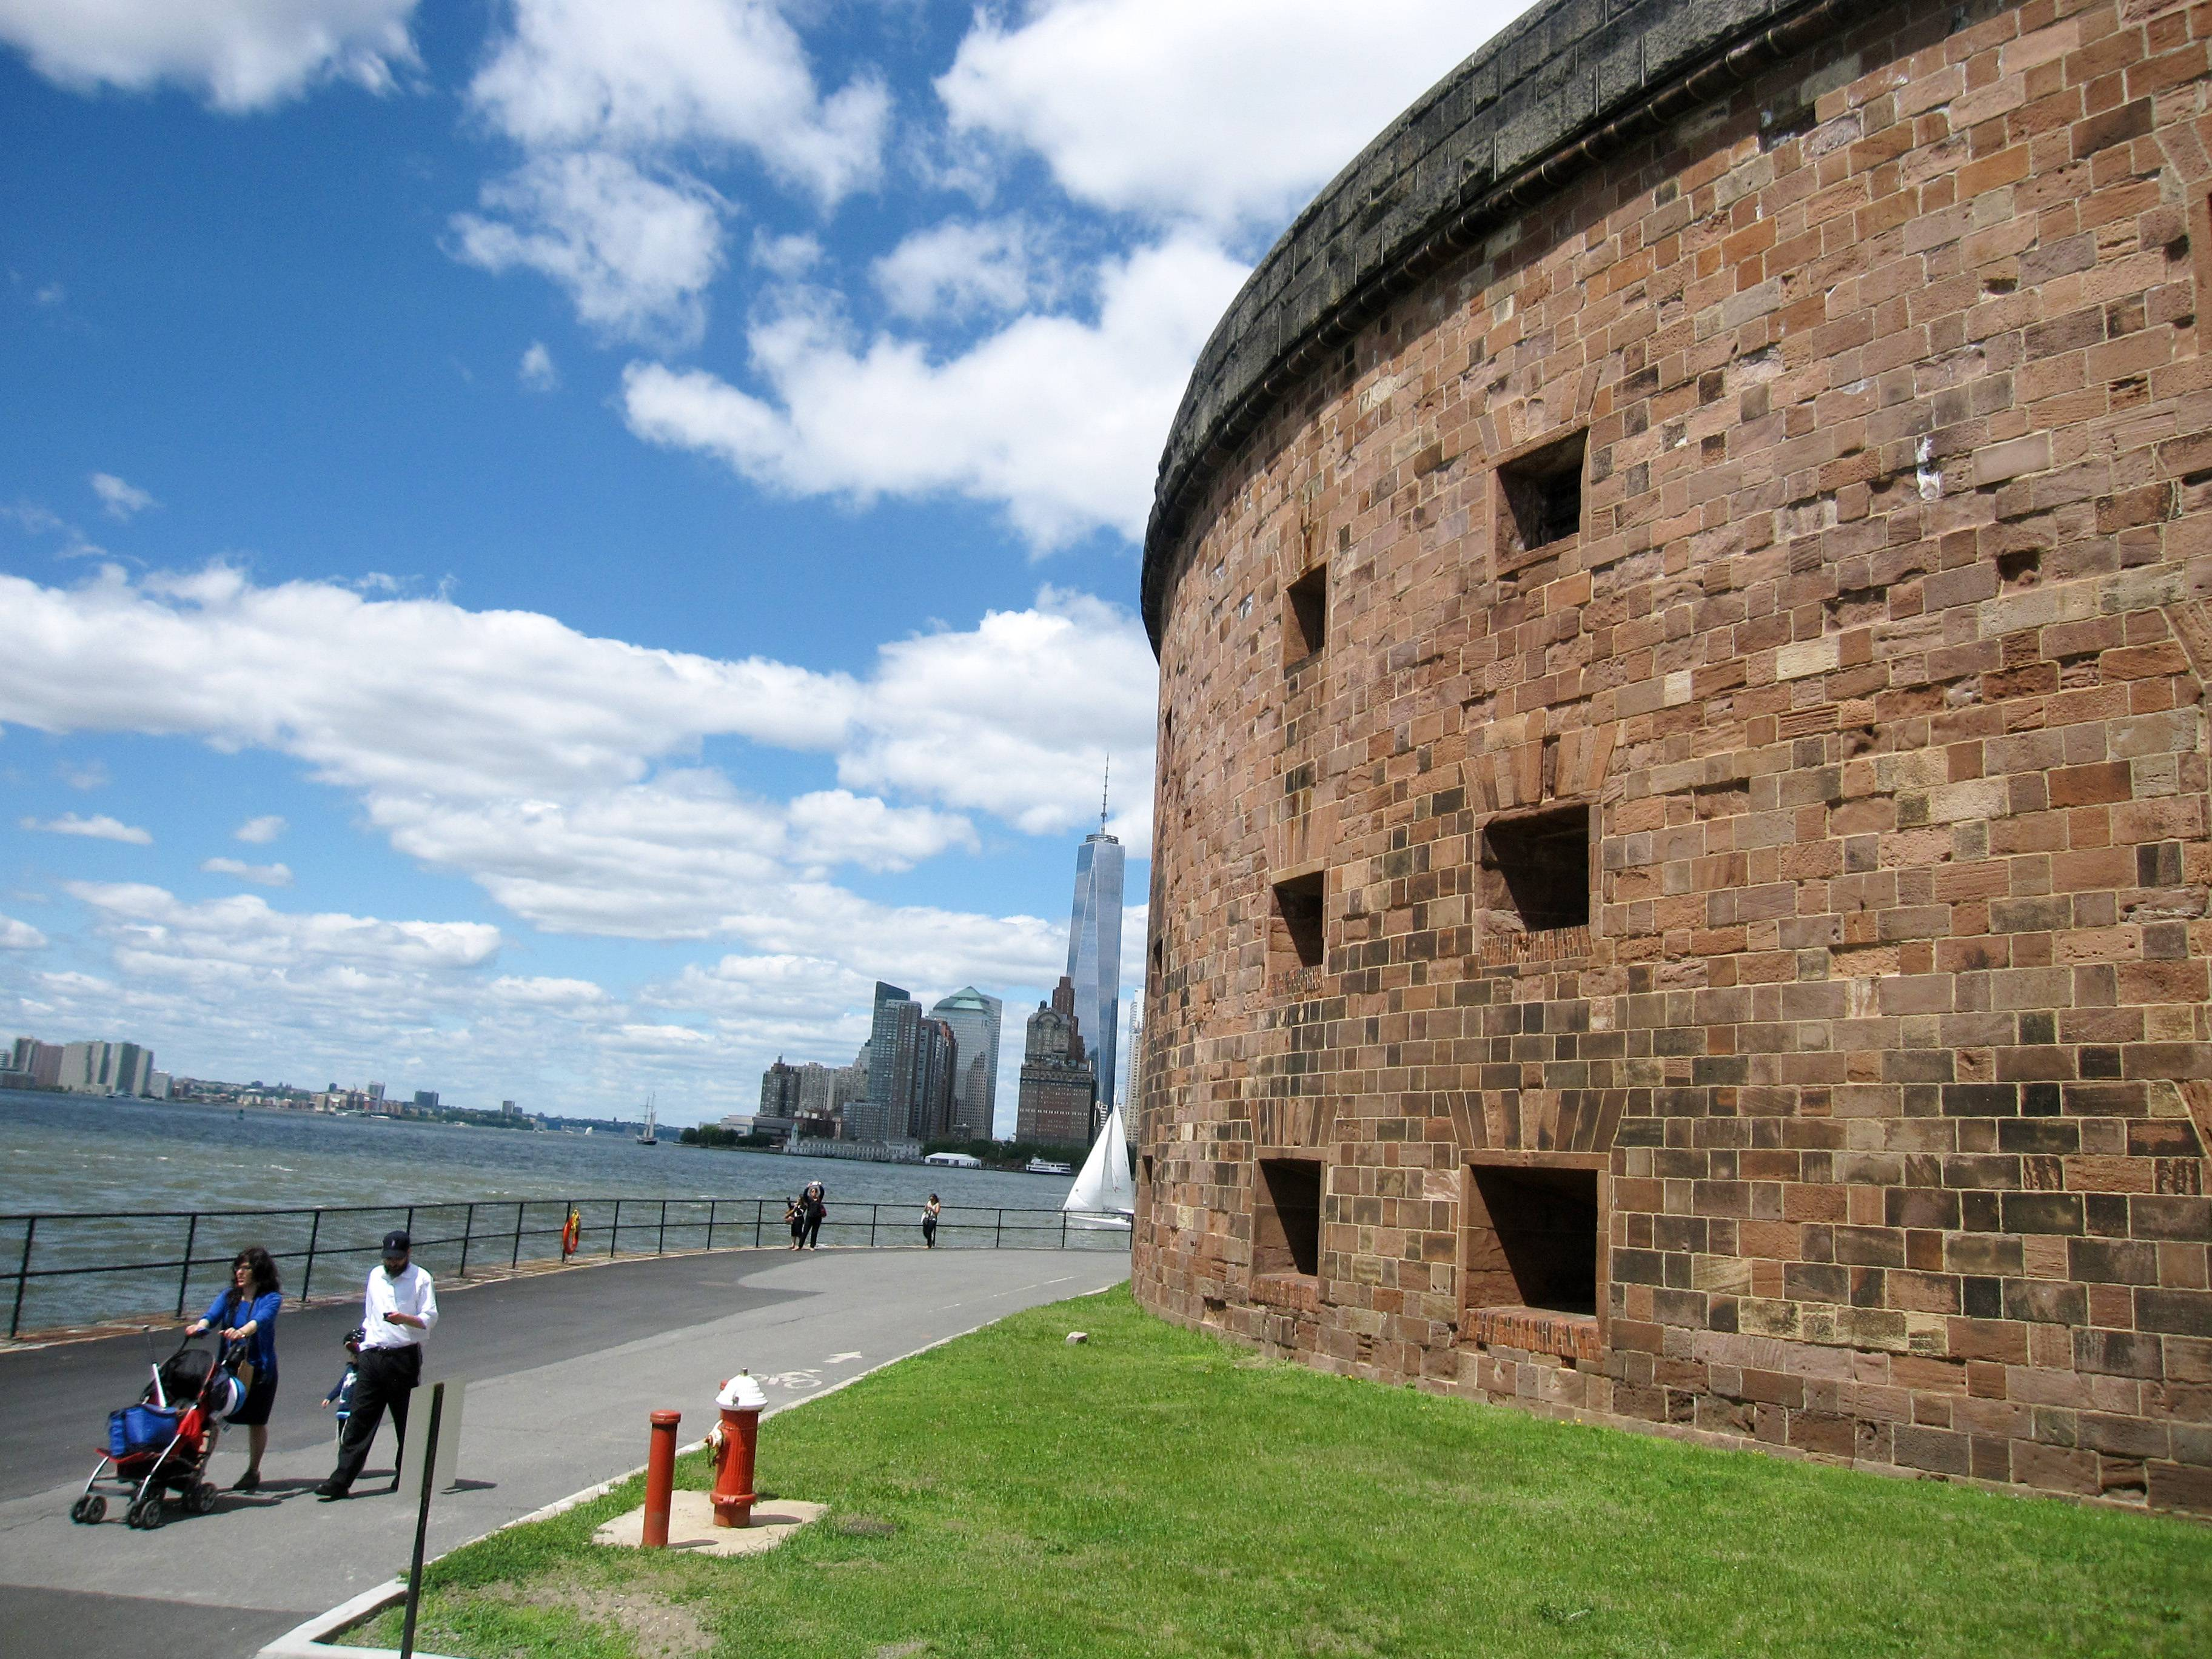 Castle Williams, a 19th-century fort located on Governors Island in New York City, is a national park site that's dotted with green lawns, outdoor art and historic buildings. It offers a variety of events and activities, along with scenic views of Manhattan.